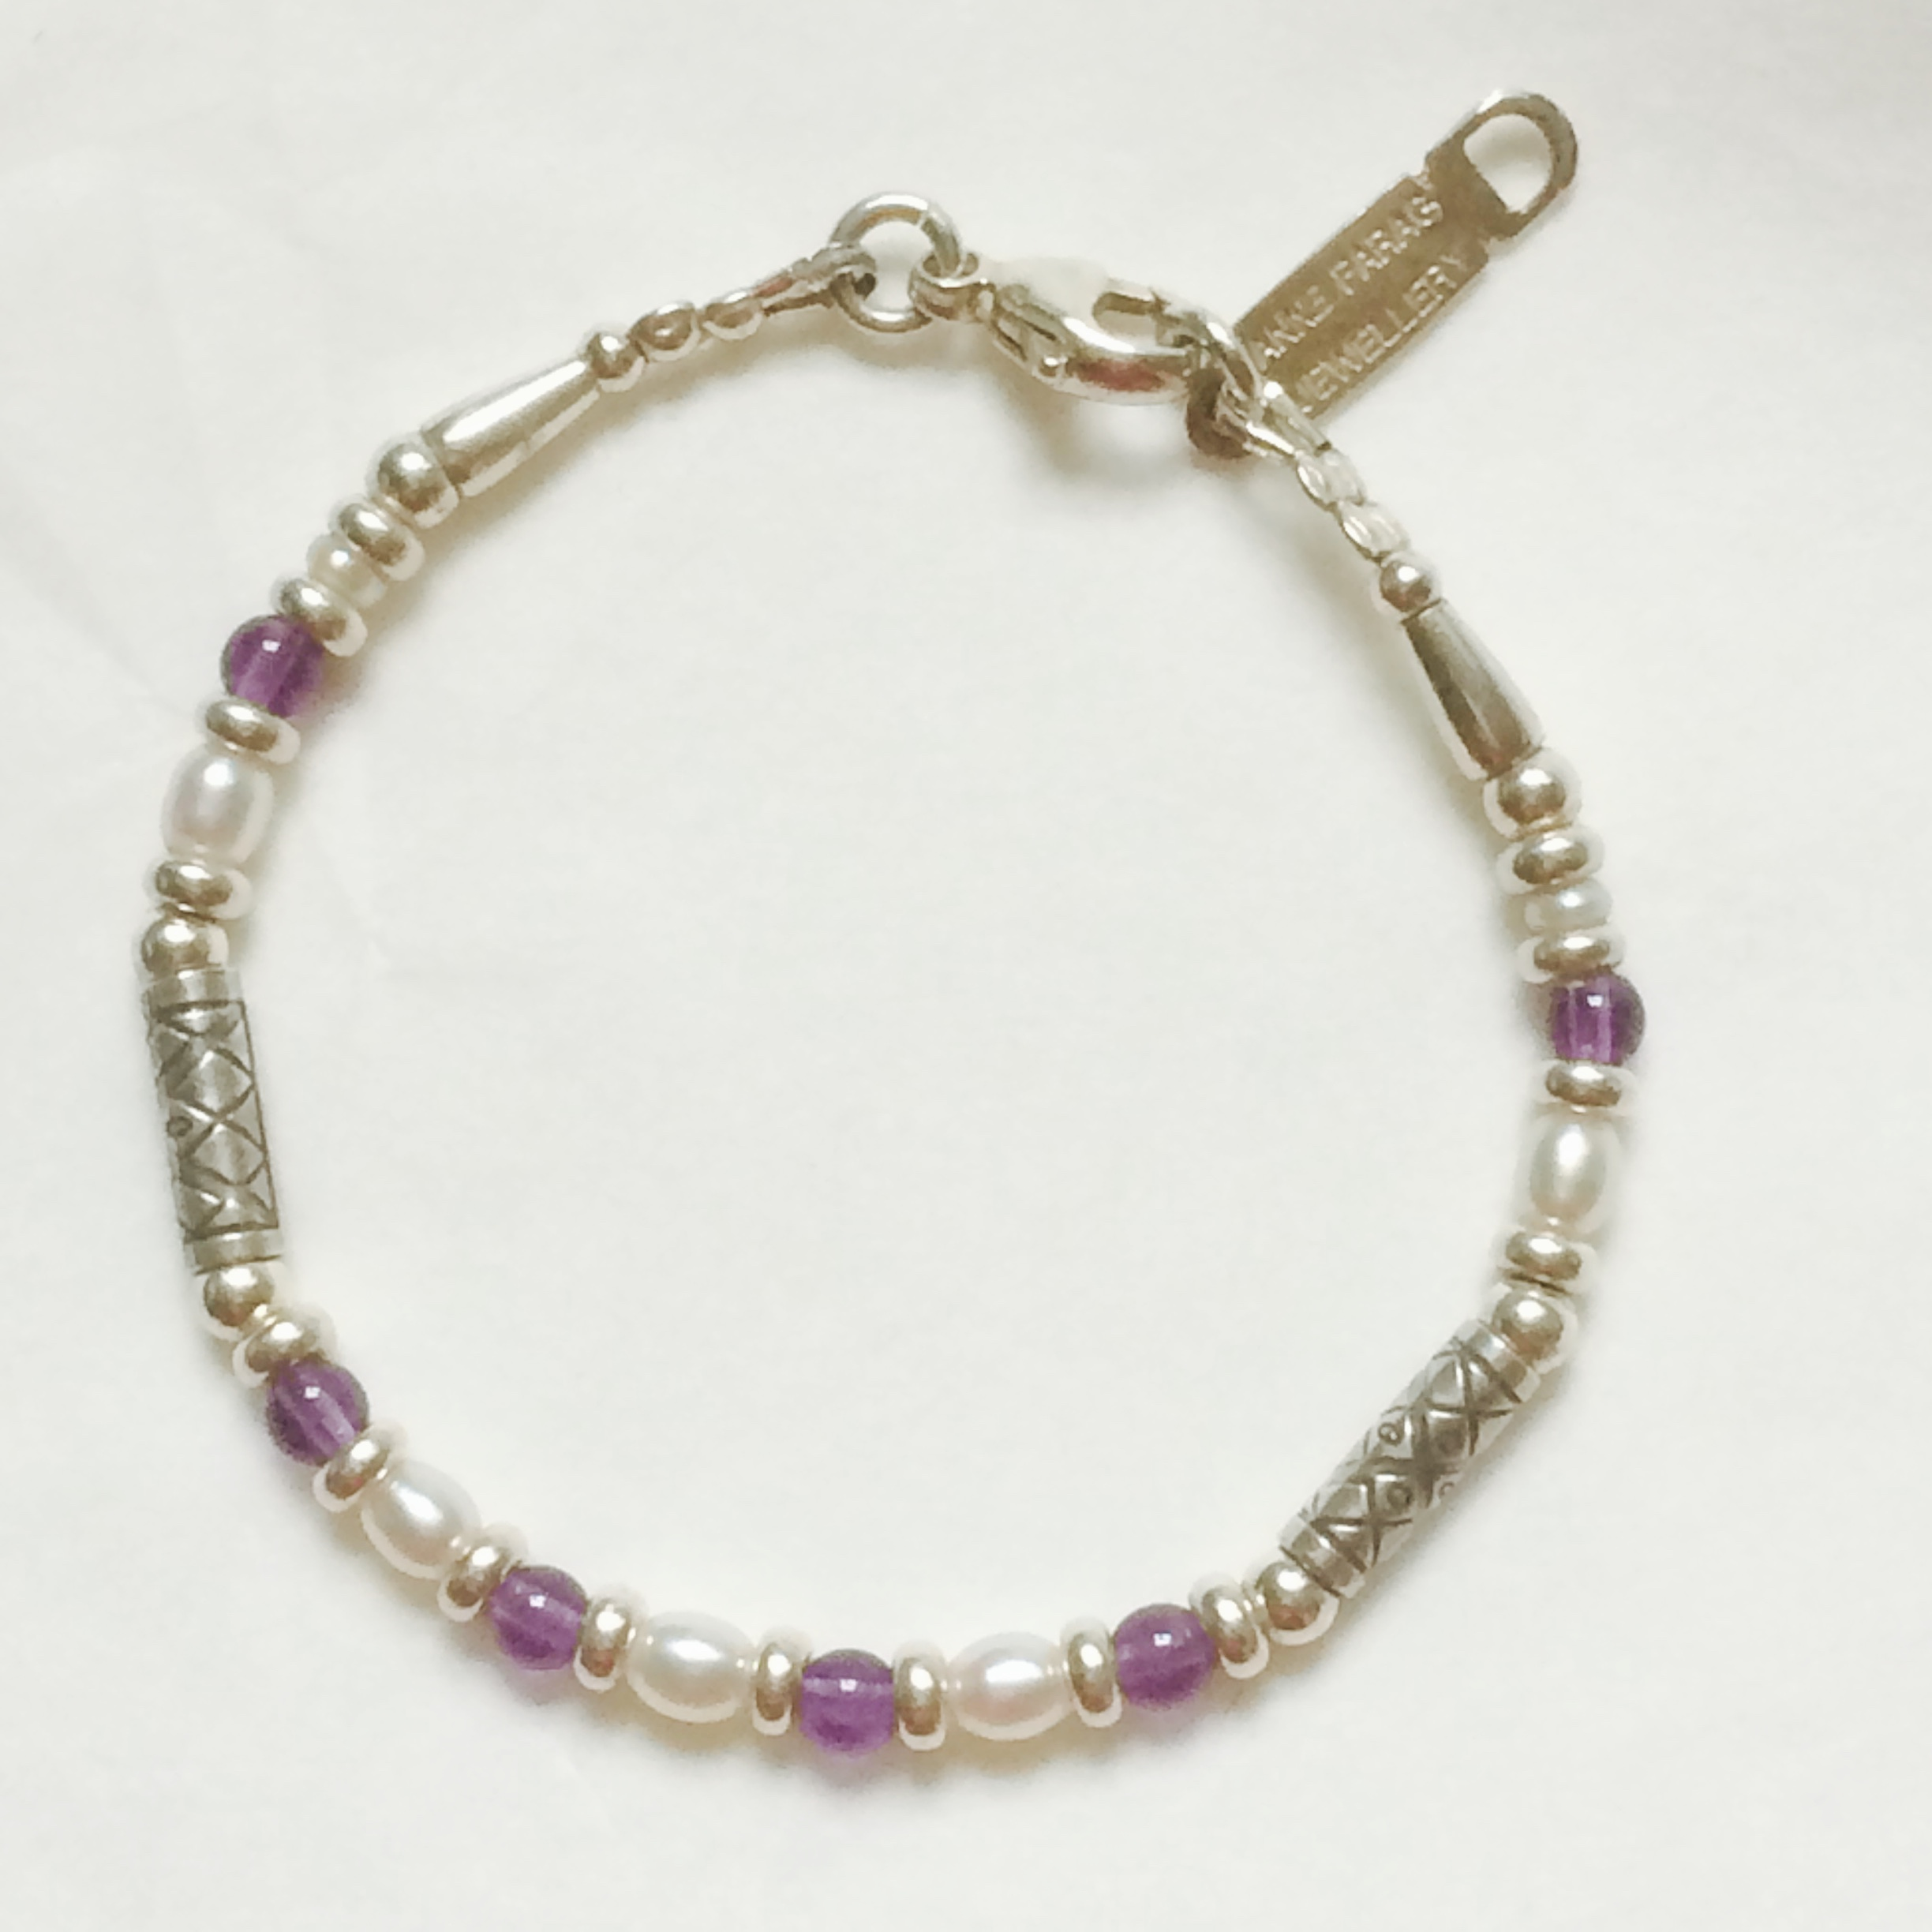 Silver, Pearl and Amethyst Bracelet